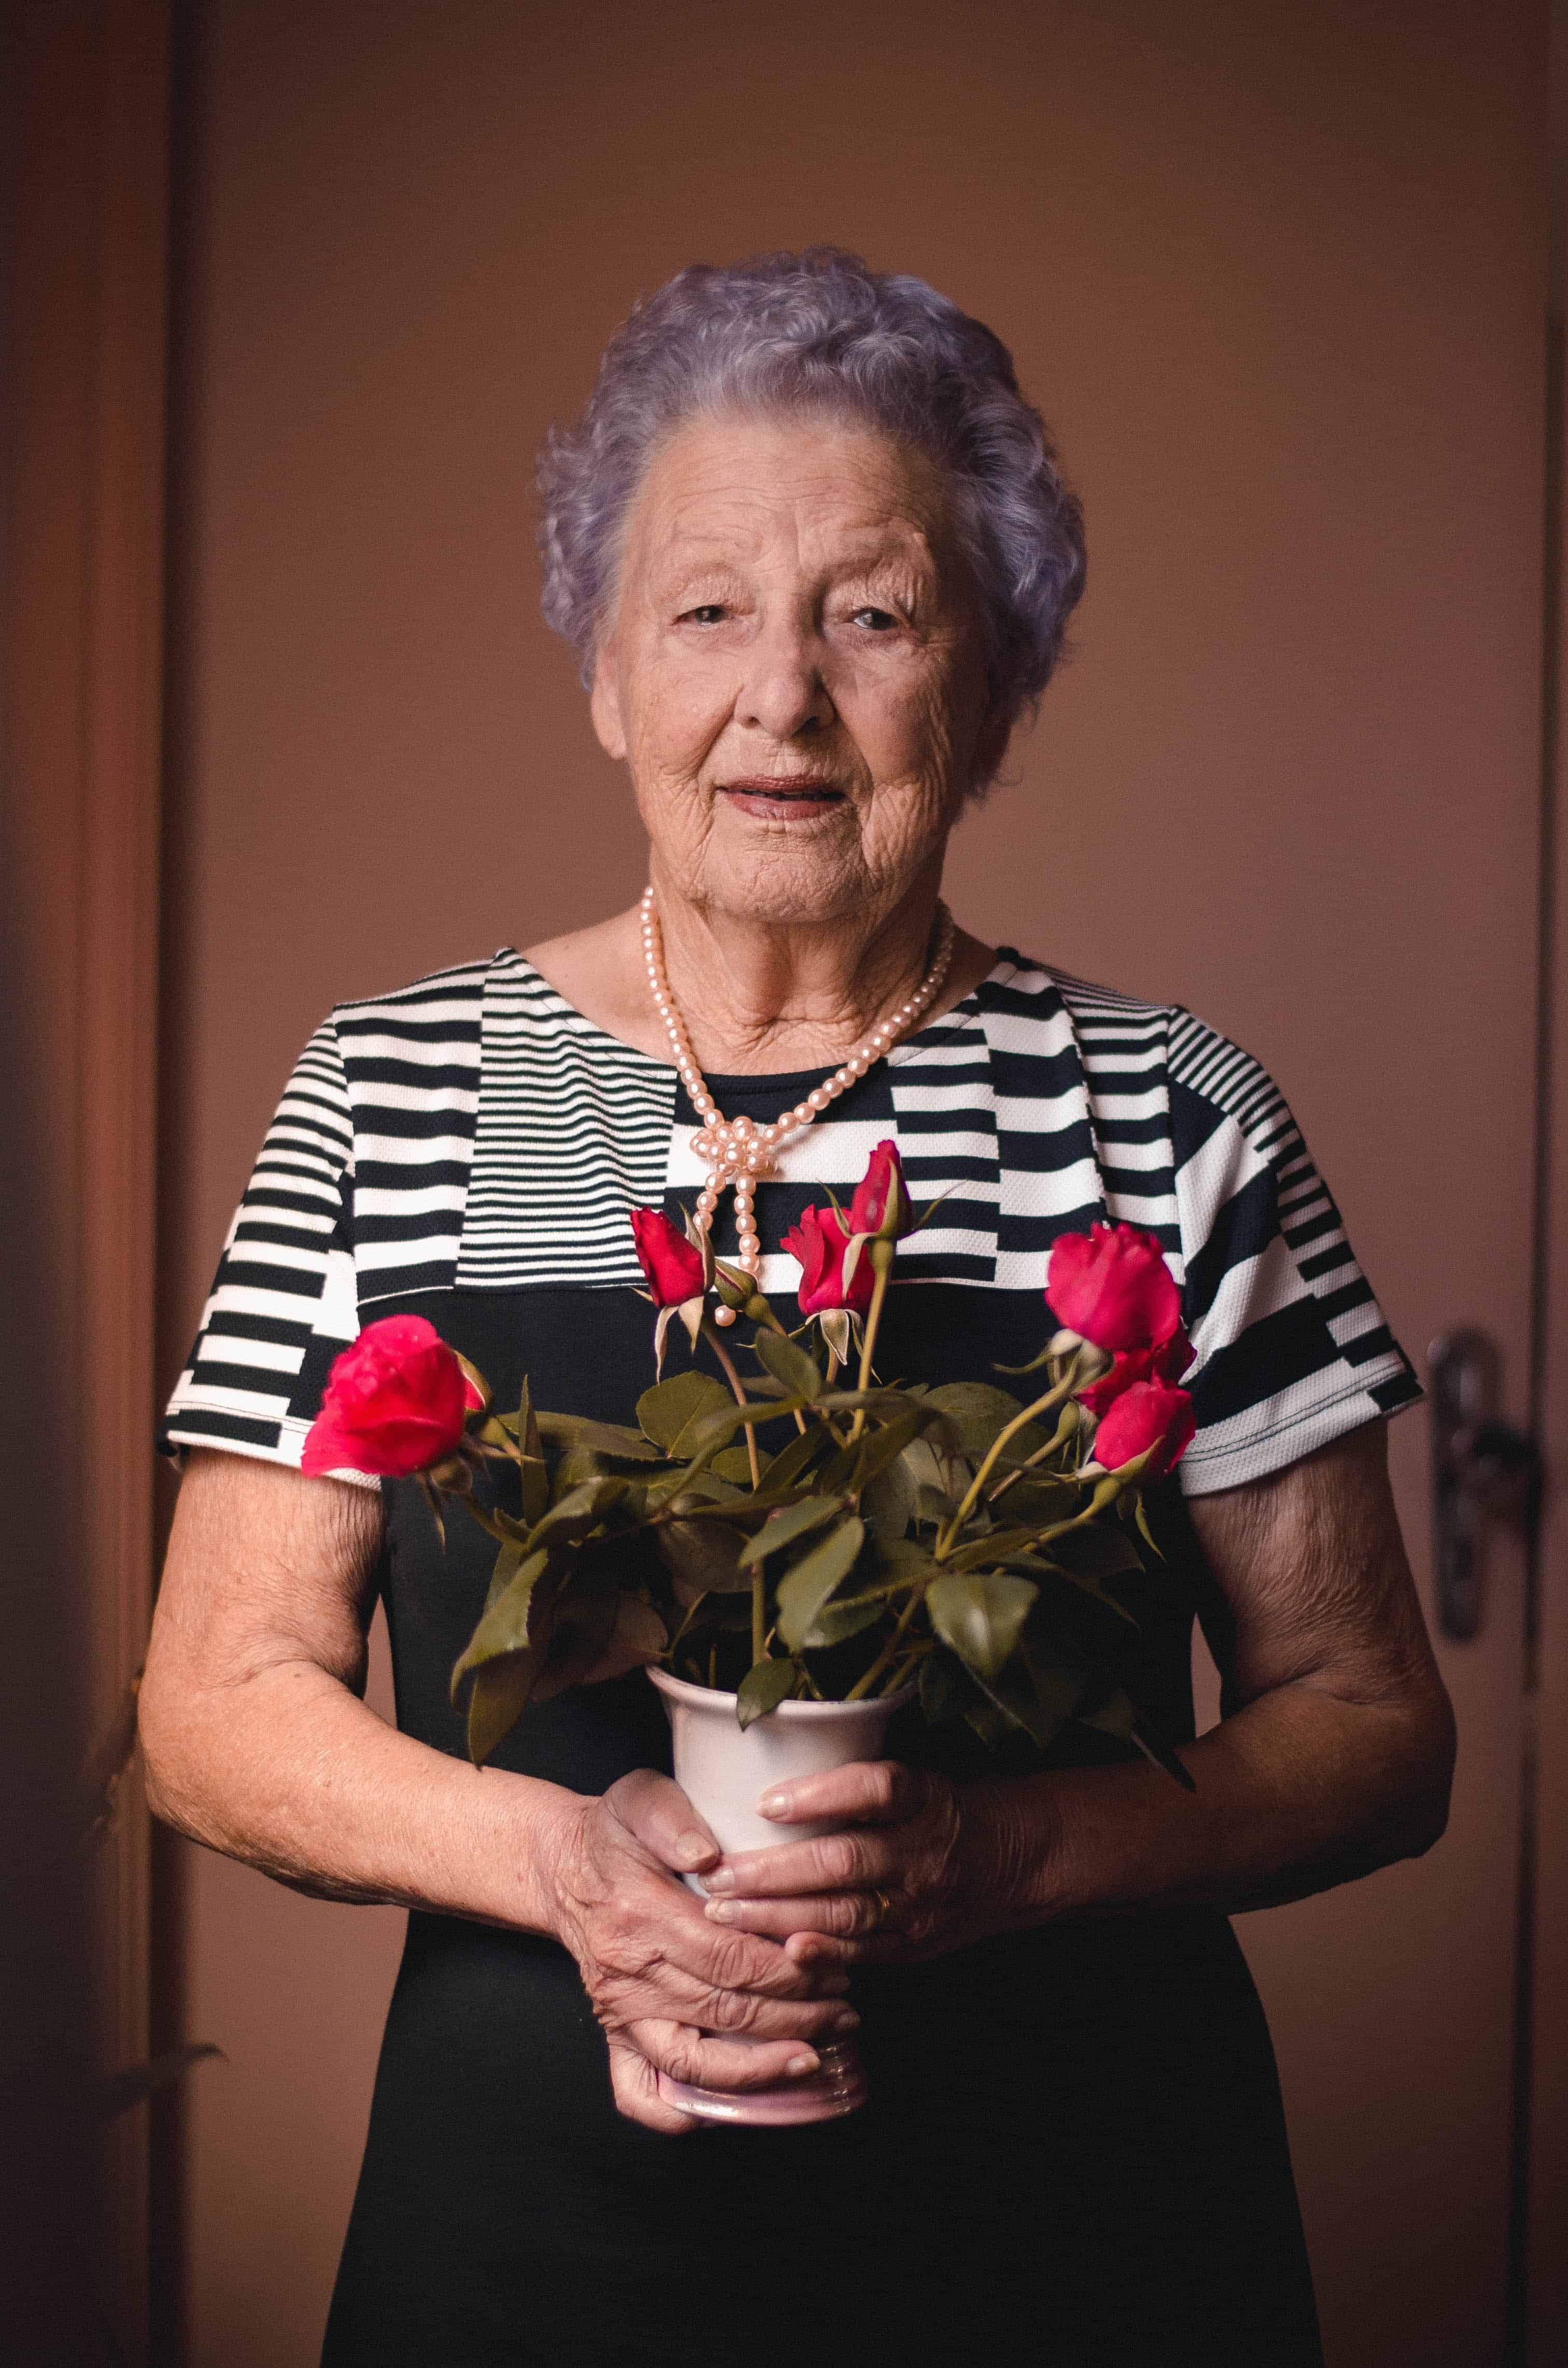 Old Age Grandmother old woman holding red flowers